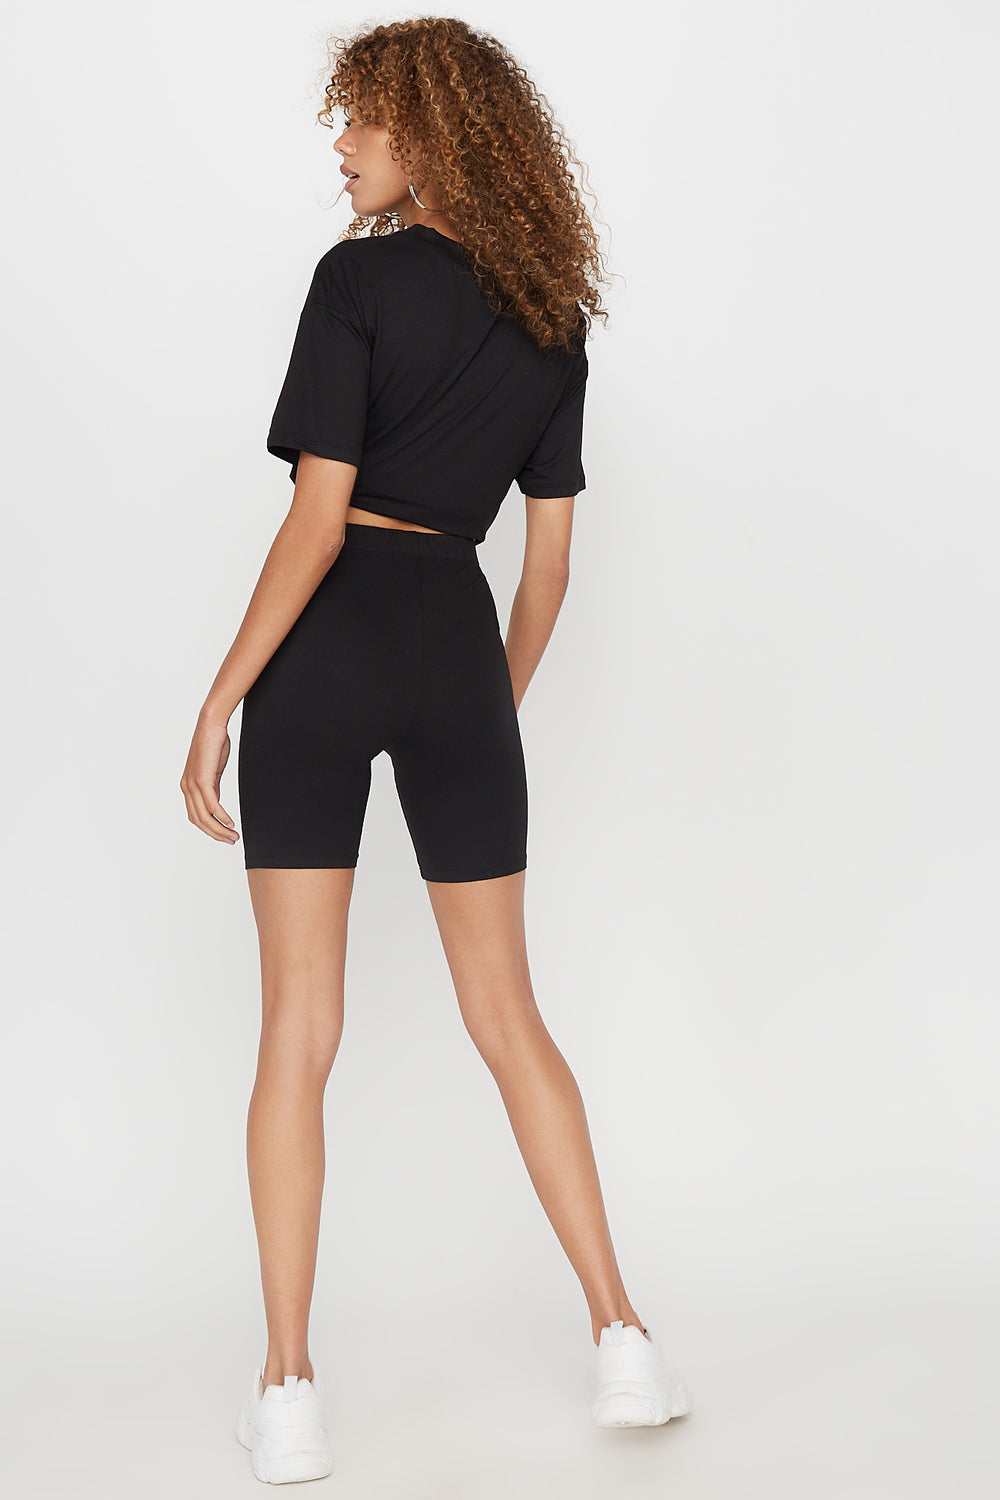 High-Rise Biker Short Black